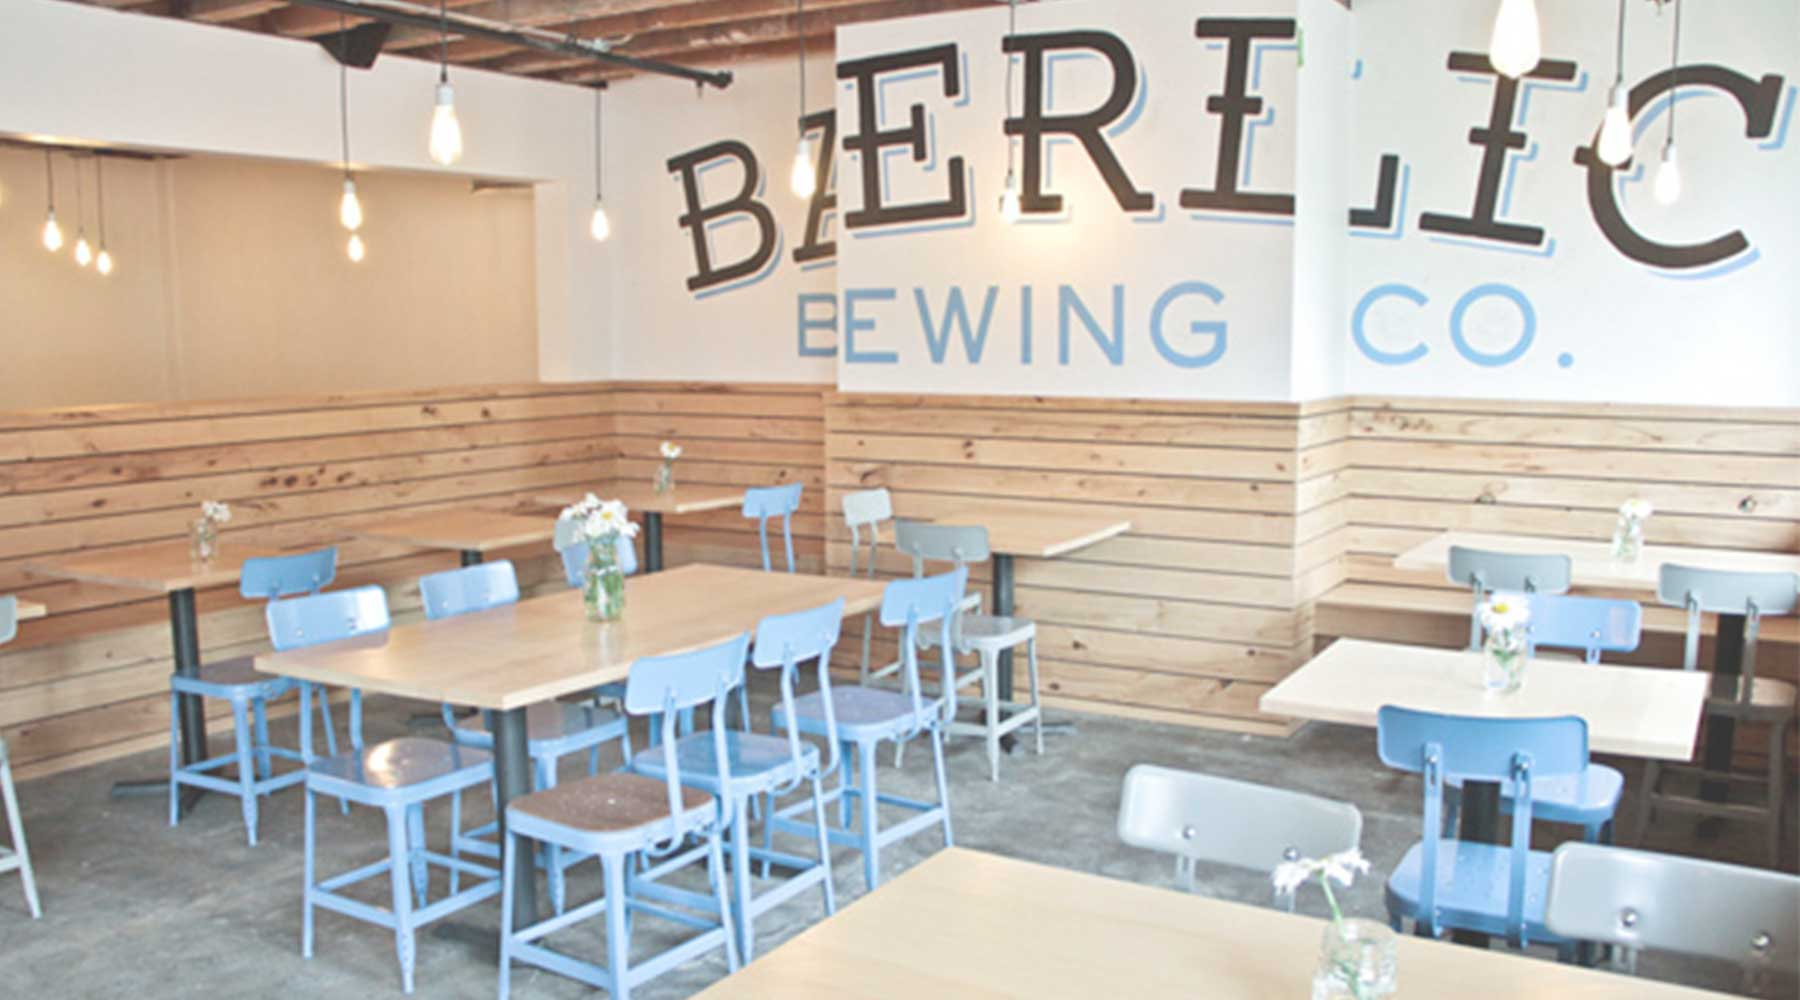 Baerlic Brewing Company | Just Wine